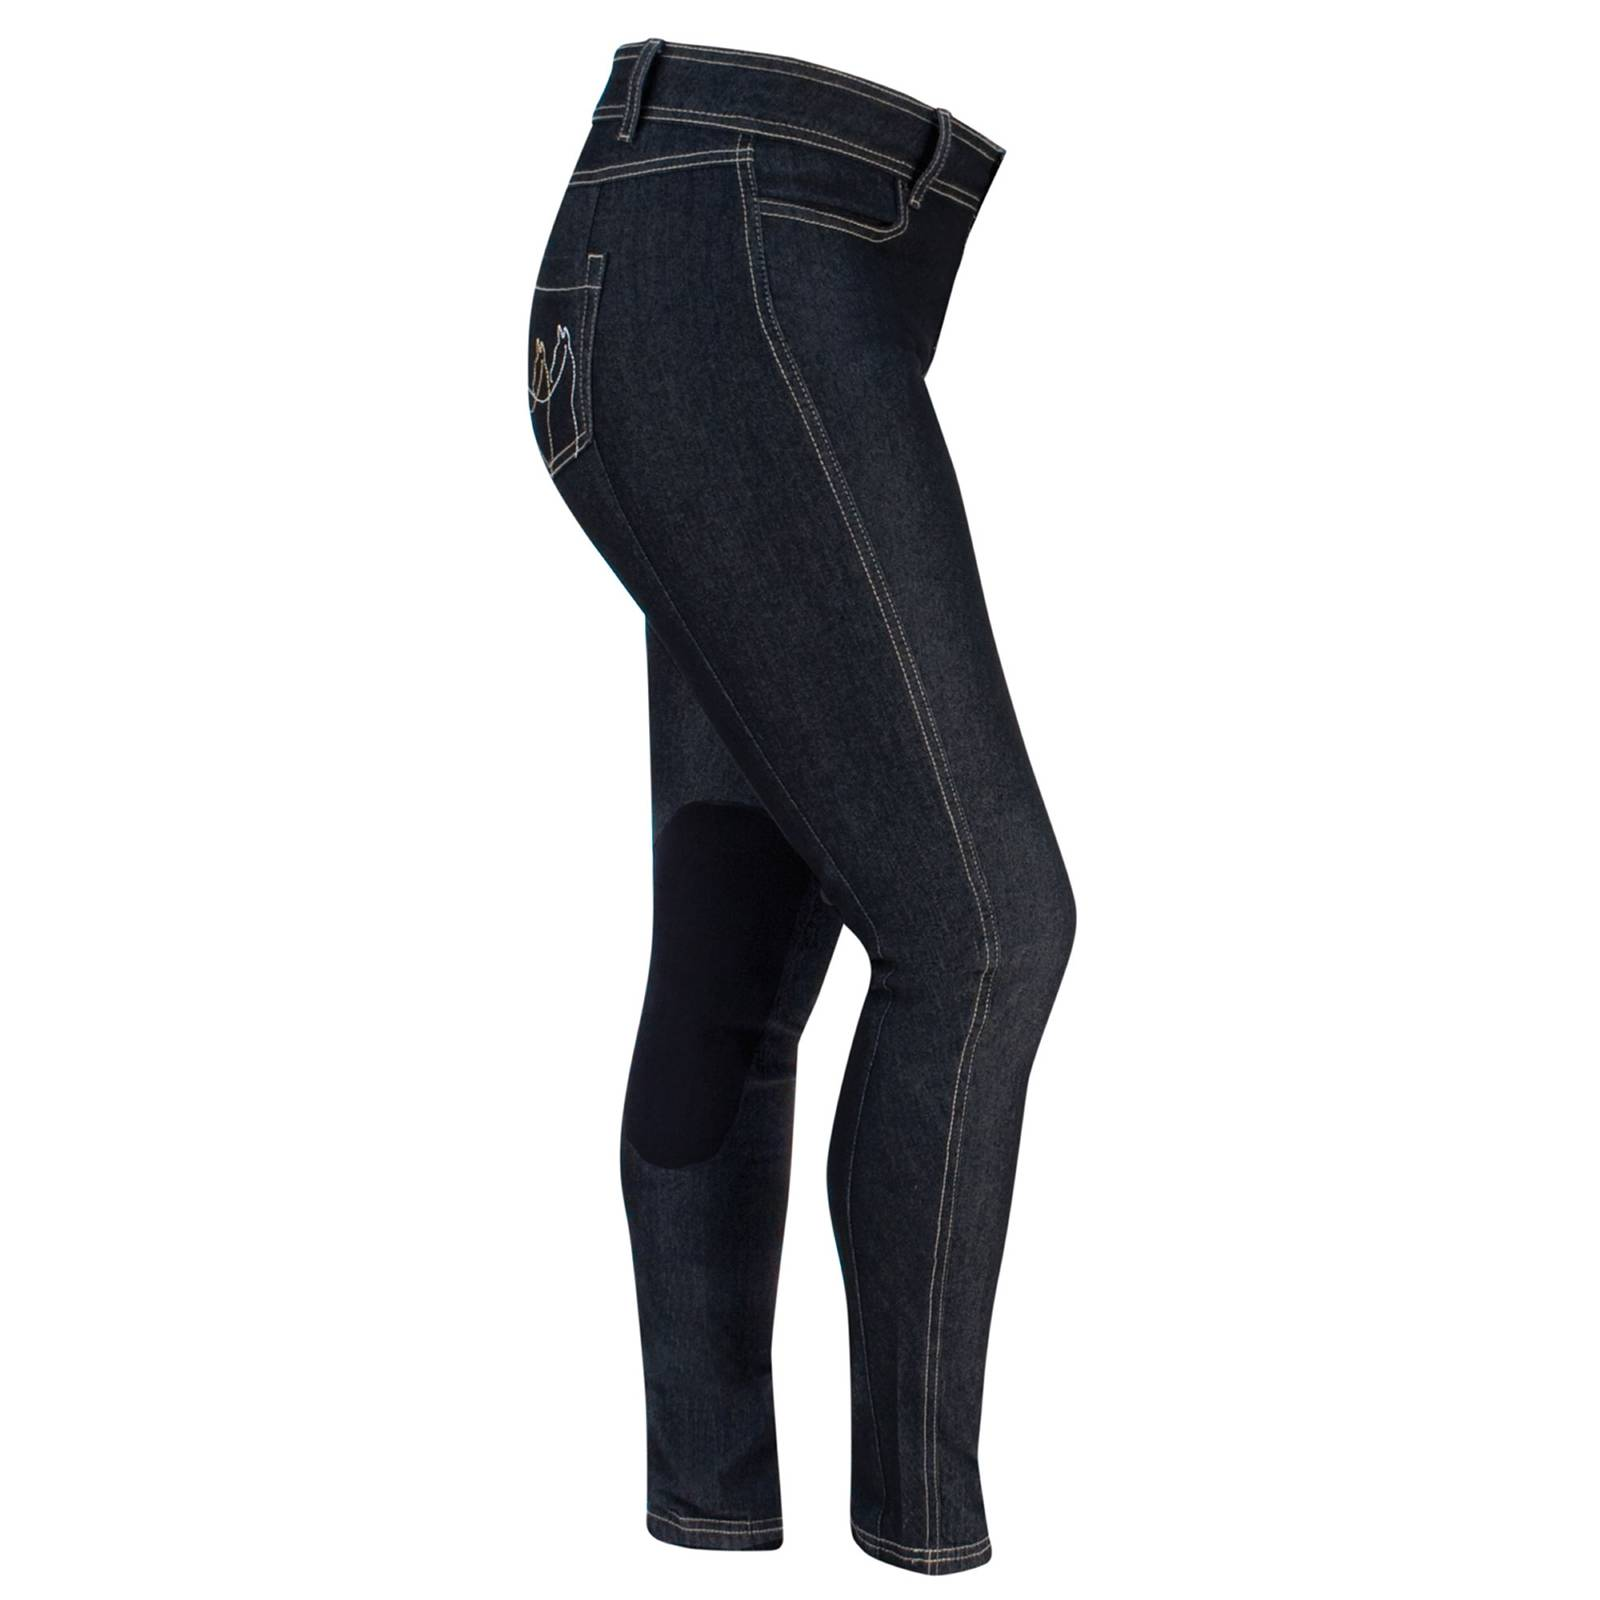 Irideon Ladies Stretch Denim Jeans